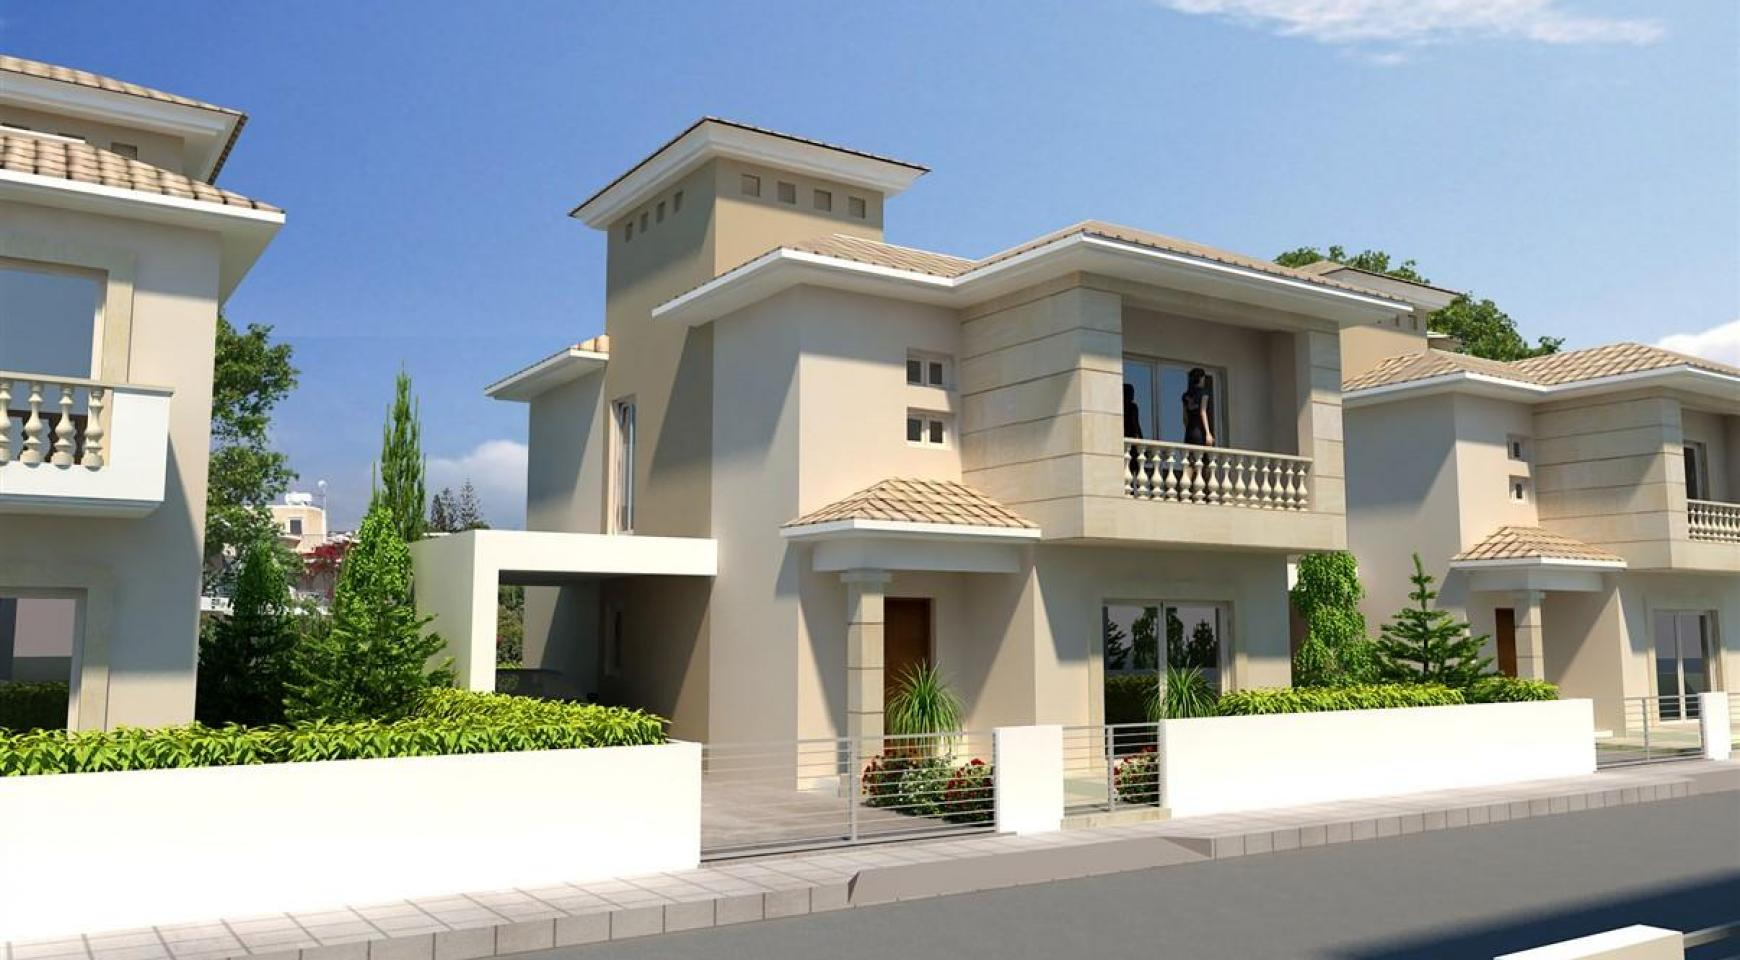 3 Bedroom Villa in New Project in Paphos - 21